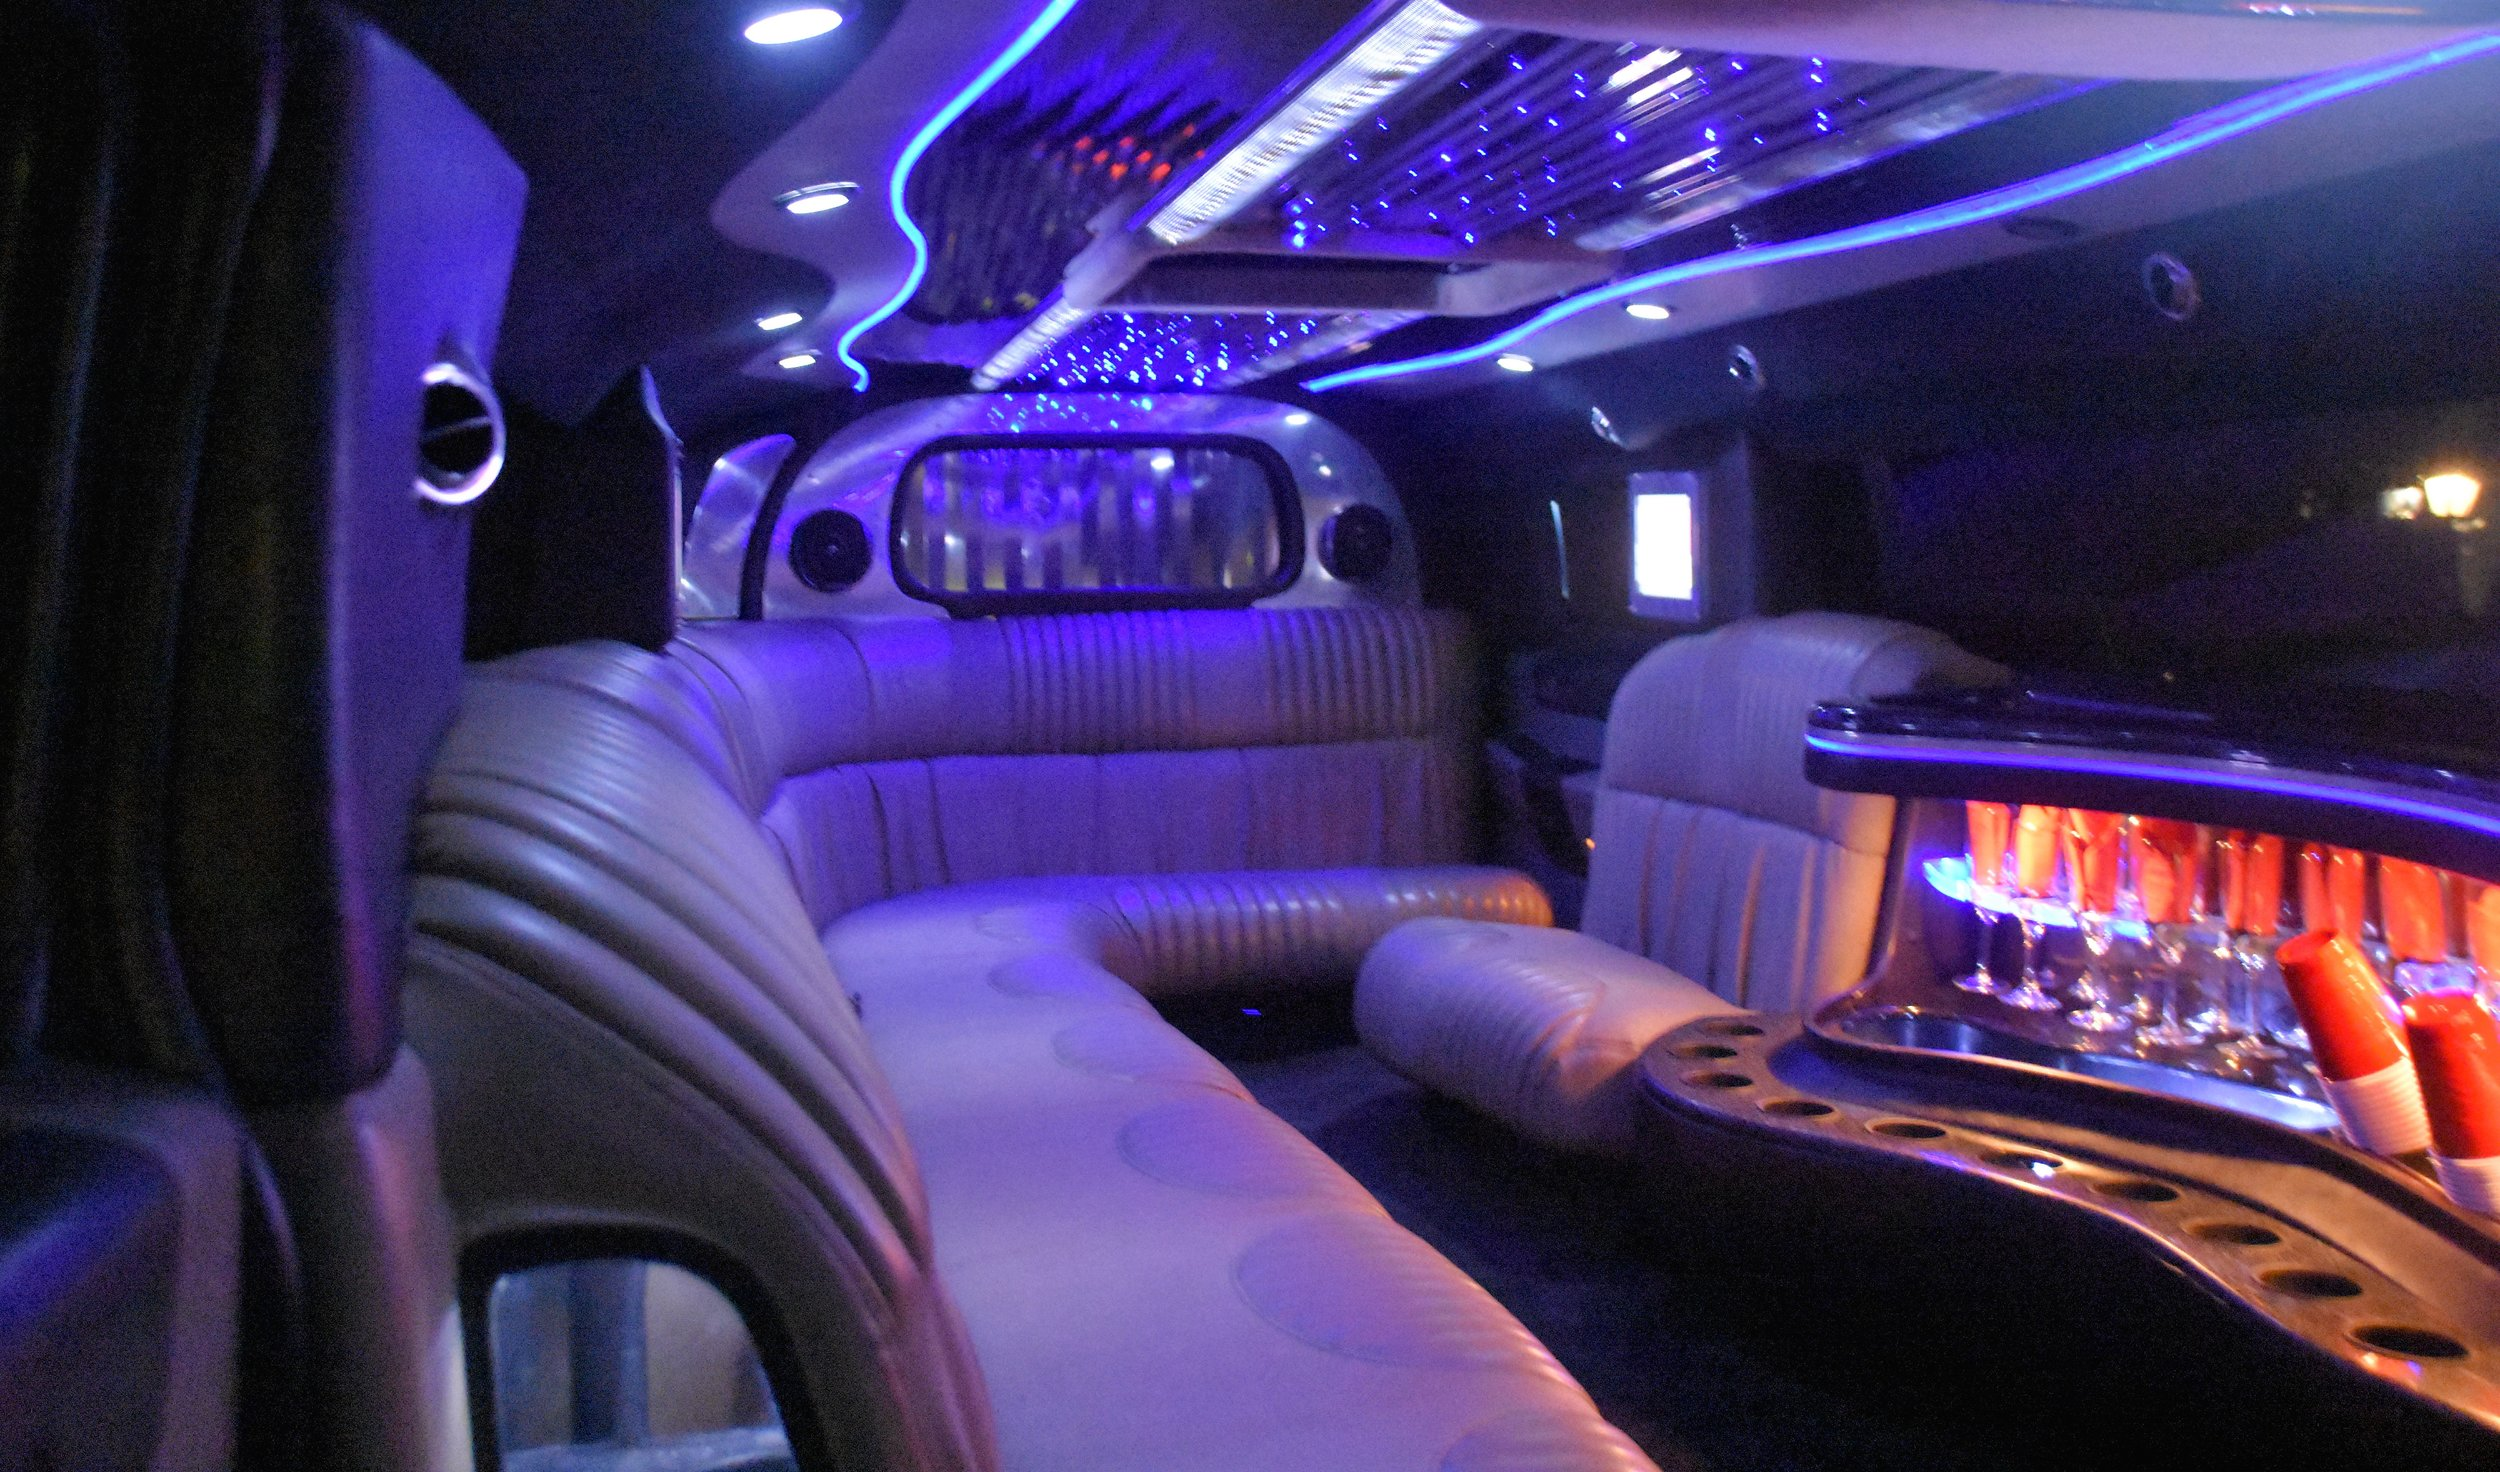 Ride in style in our HUMMER,10-12 adults comfortable, 14 children or students. With 5th door for easy entry for all passengers -